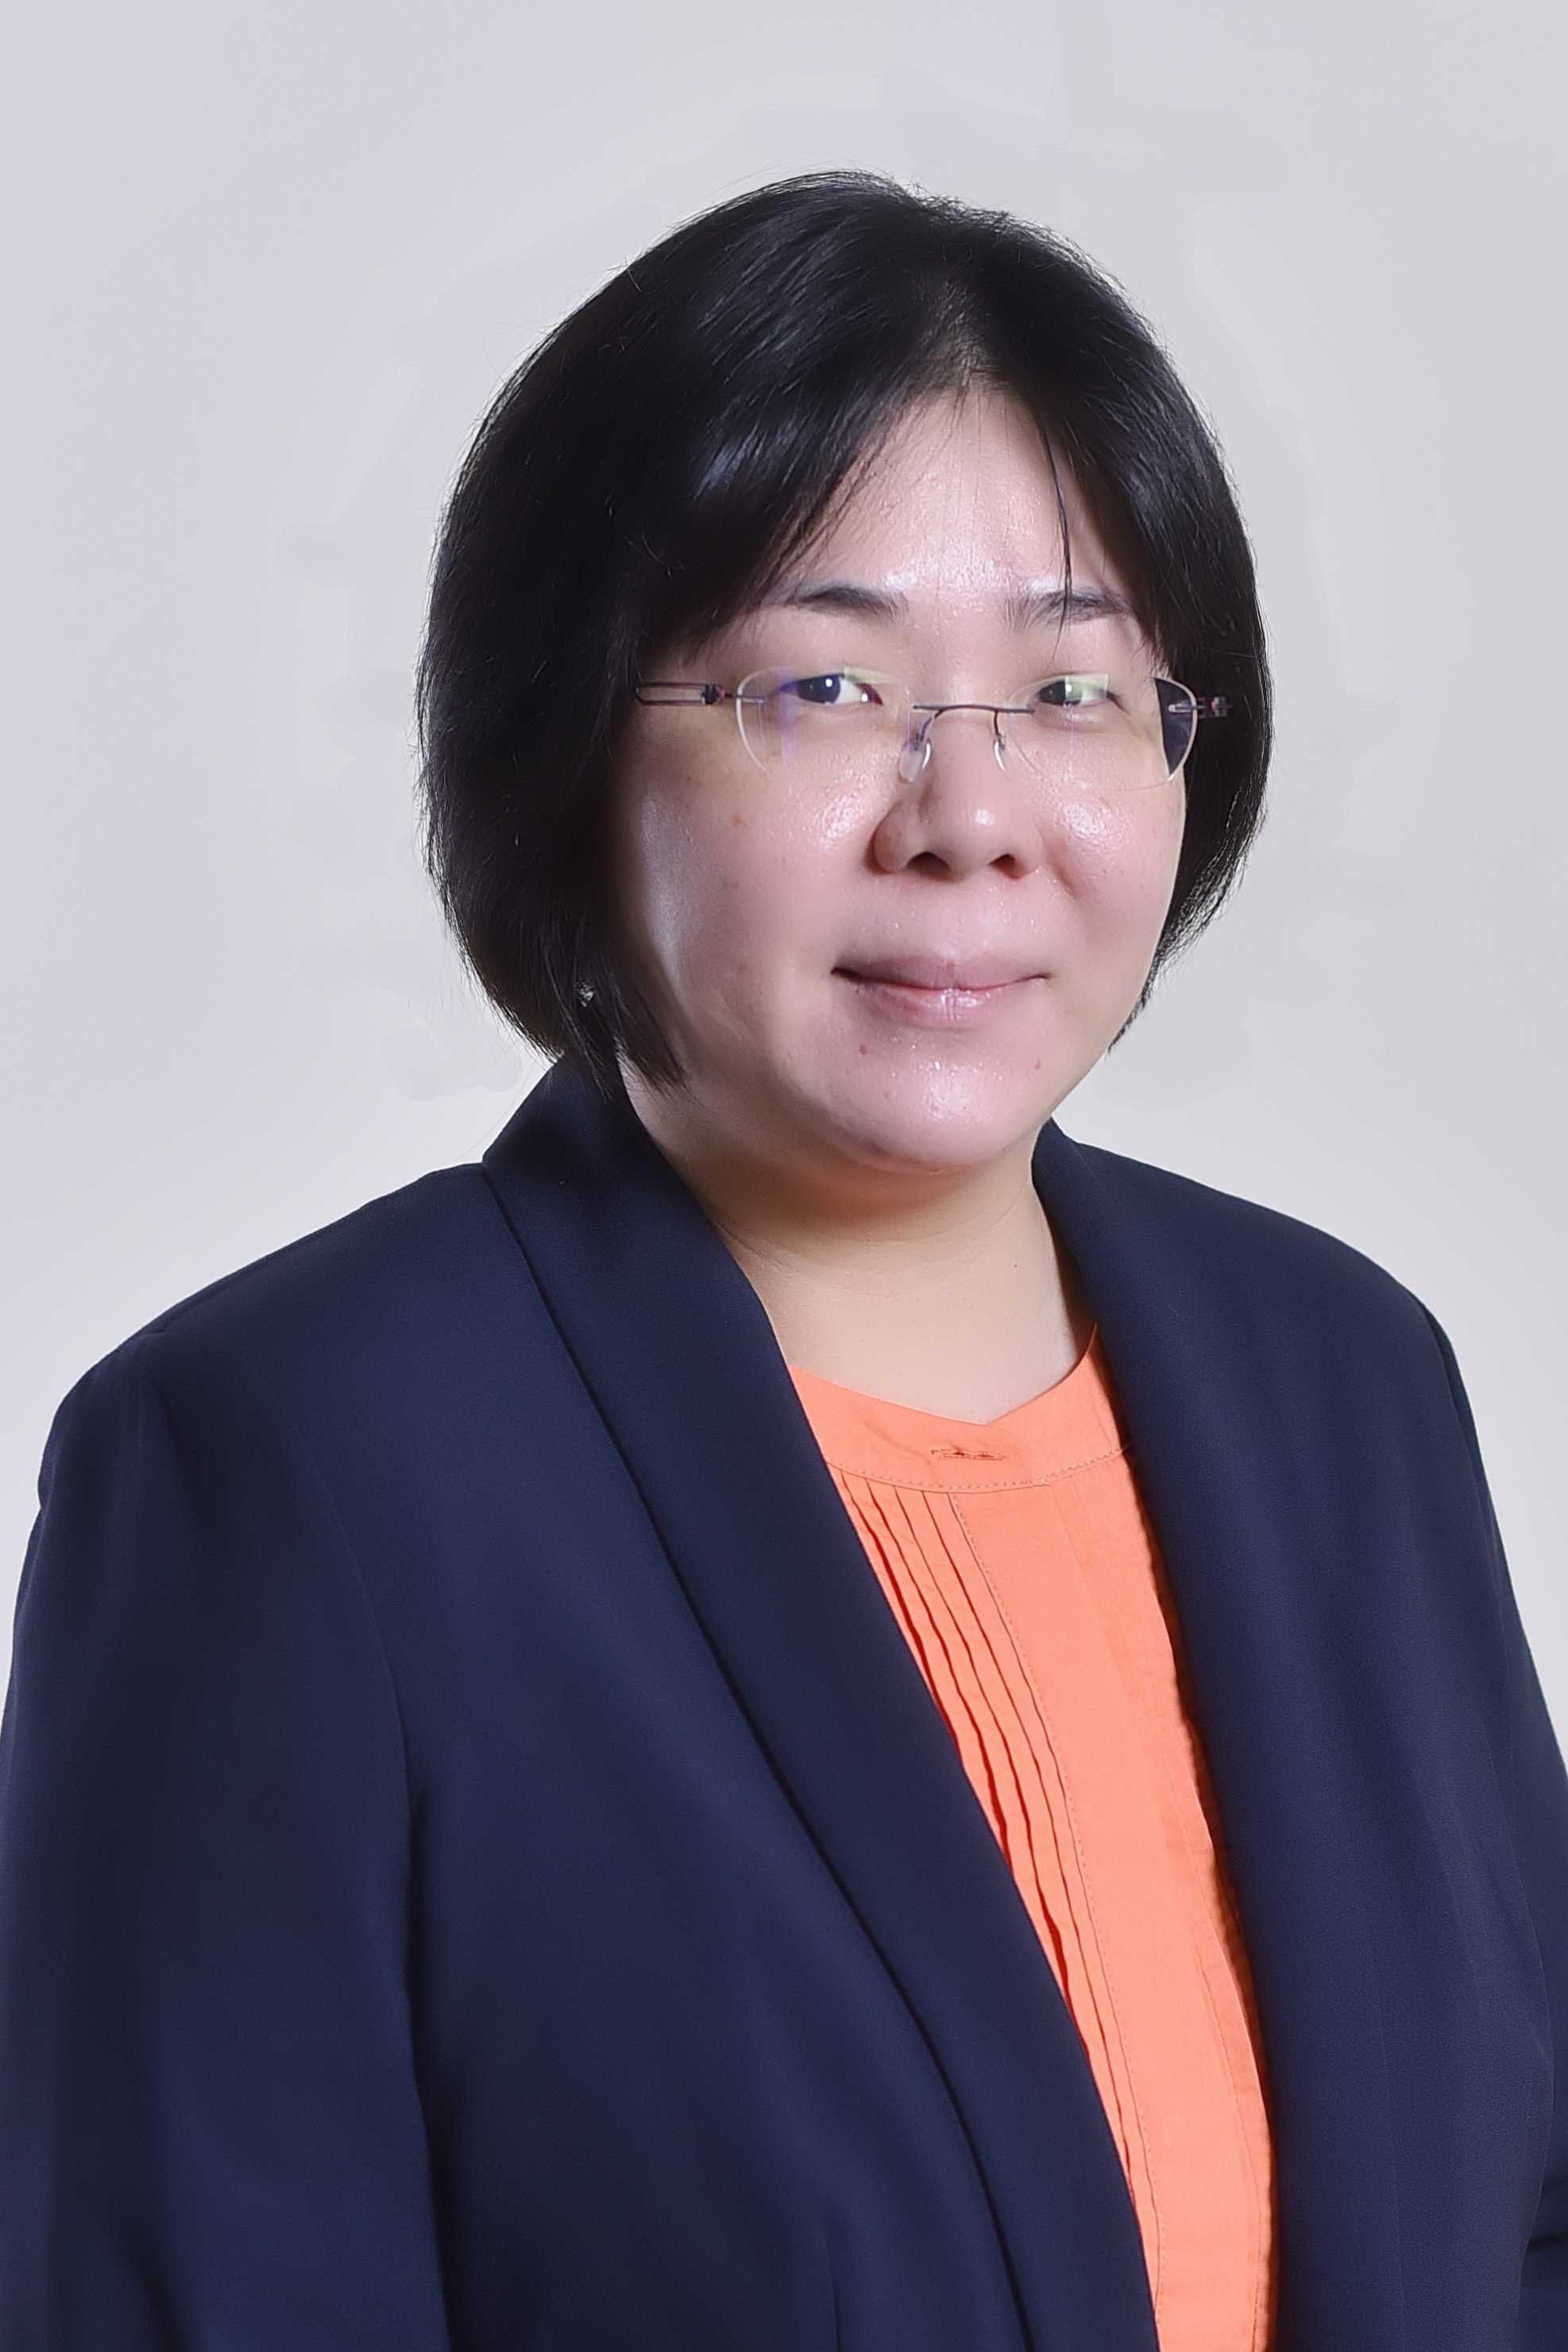 Dr Teoh Ying Jia